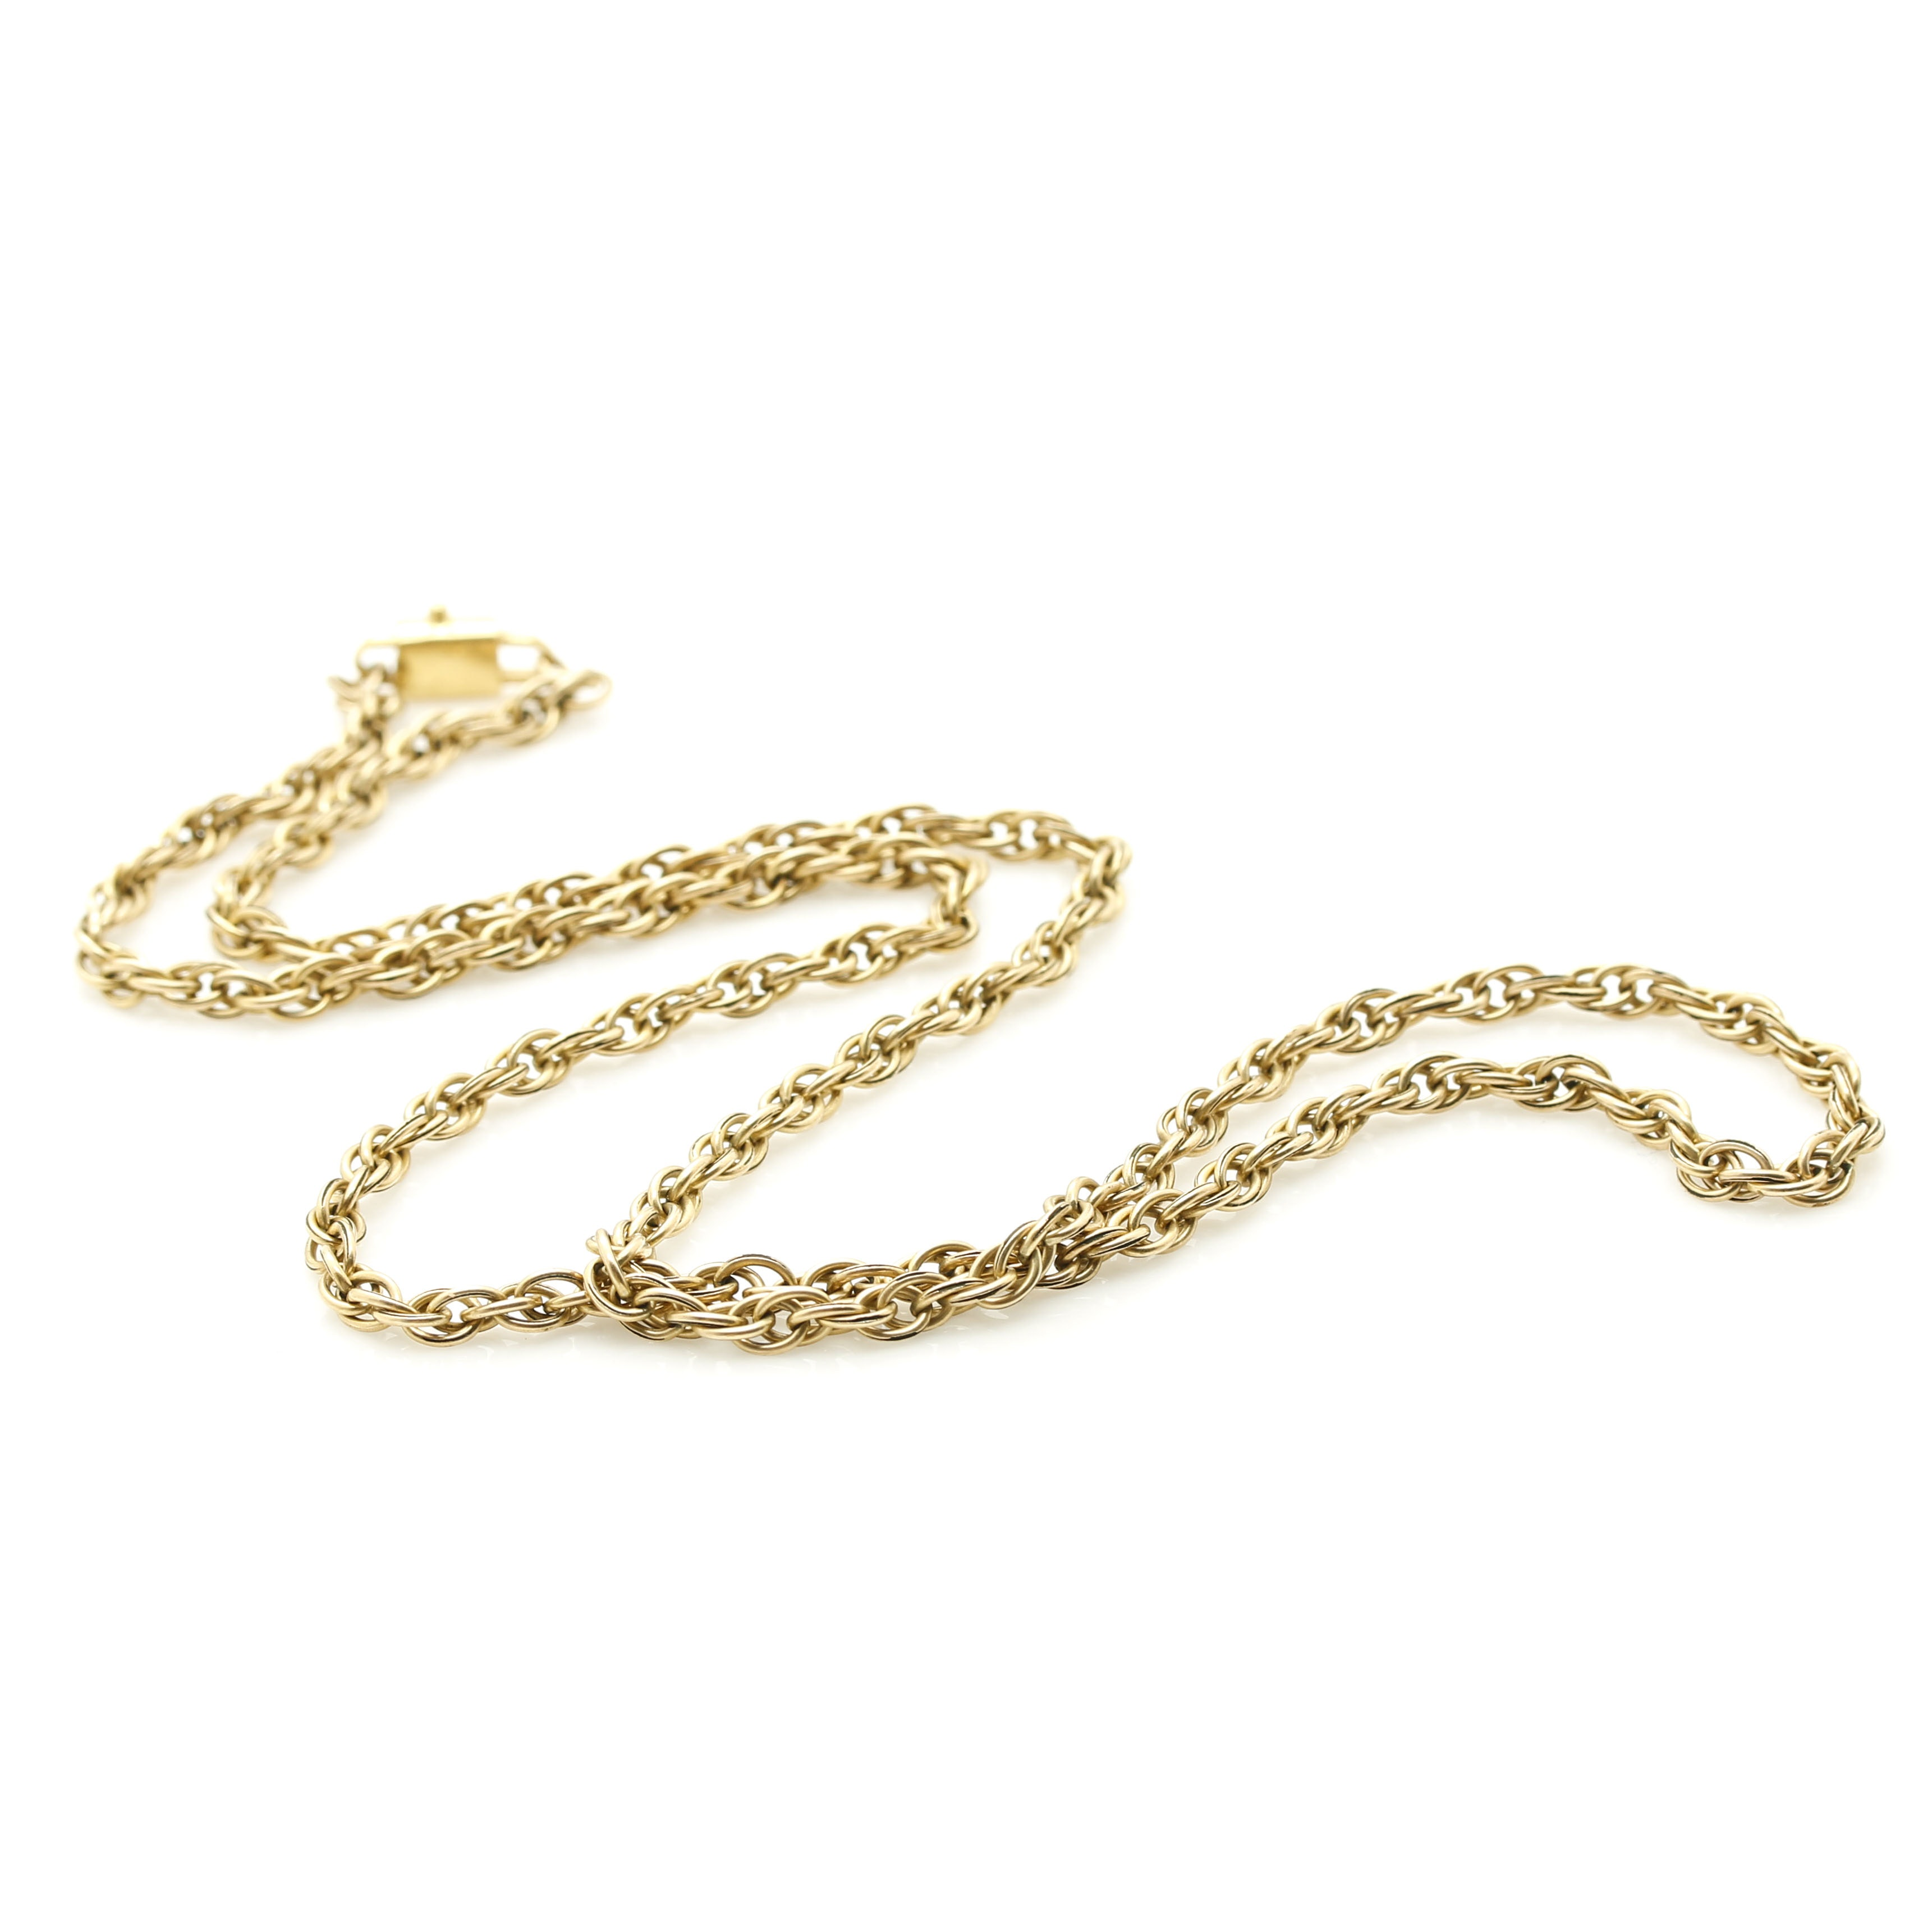 Chimento 18K Yellow Gold Clasp on Gold Plated Chain